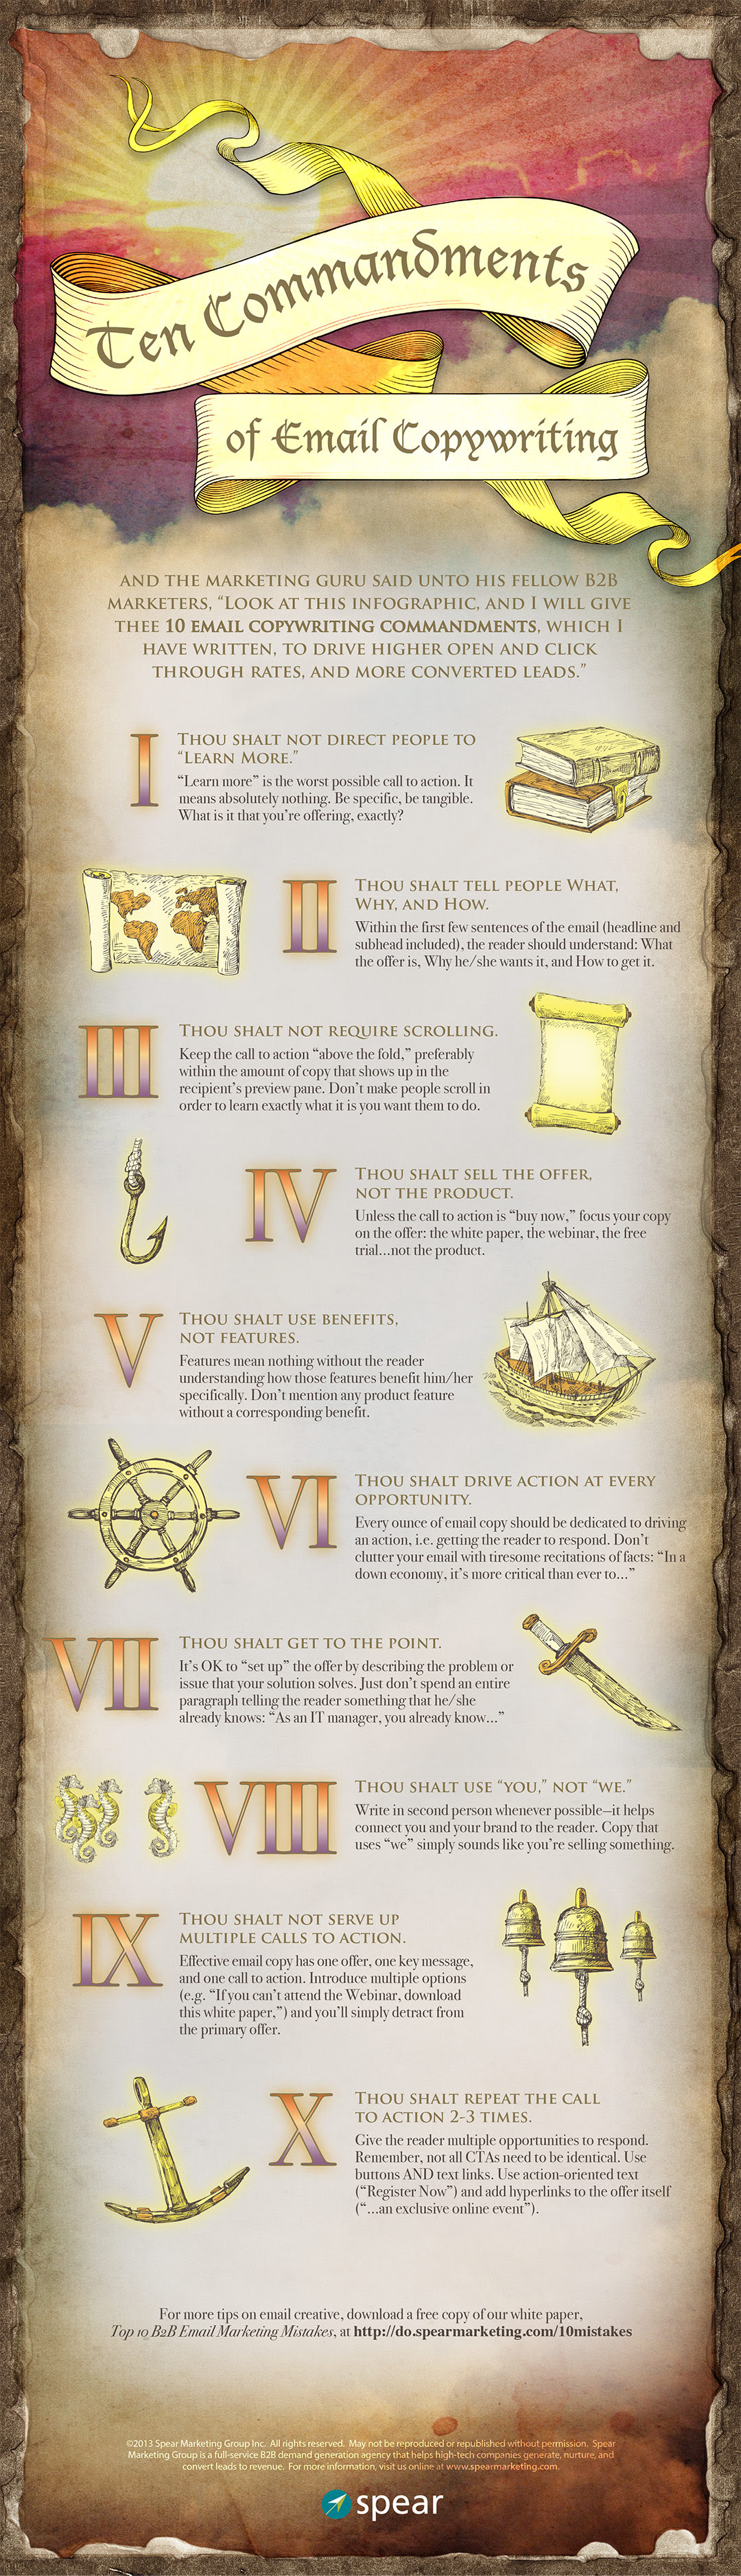 Infographic: Ten Commandments of Email Copywriting